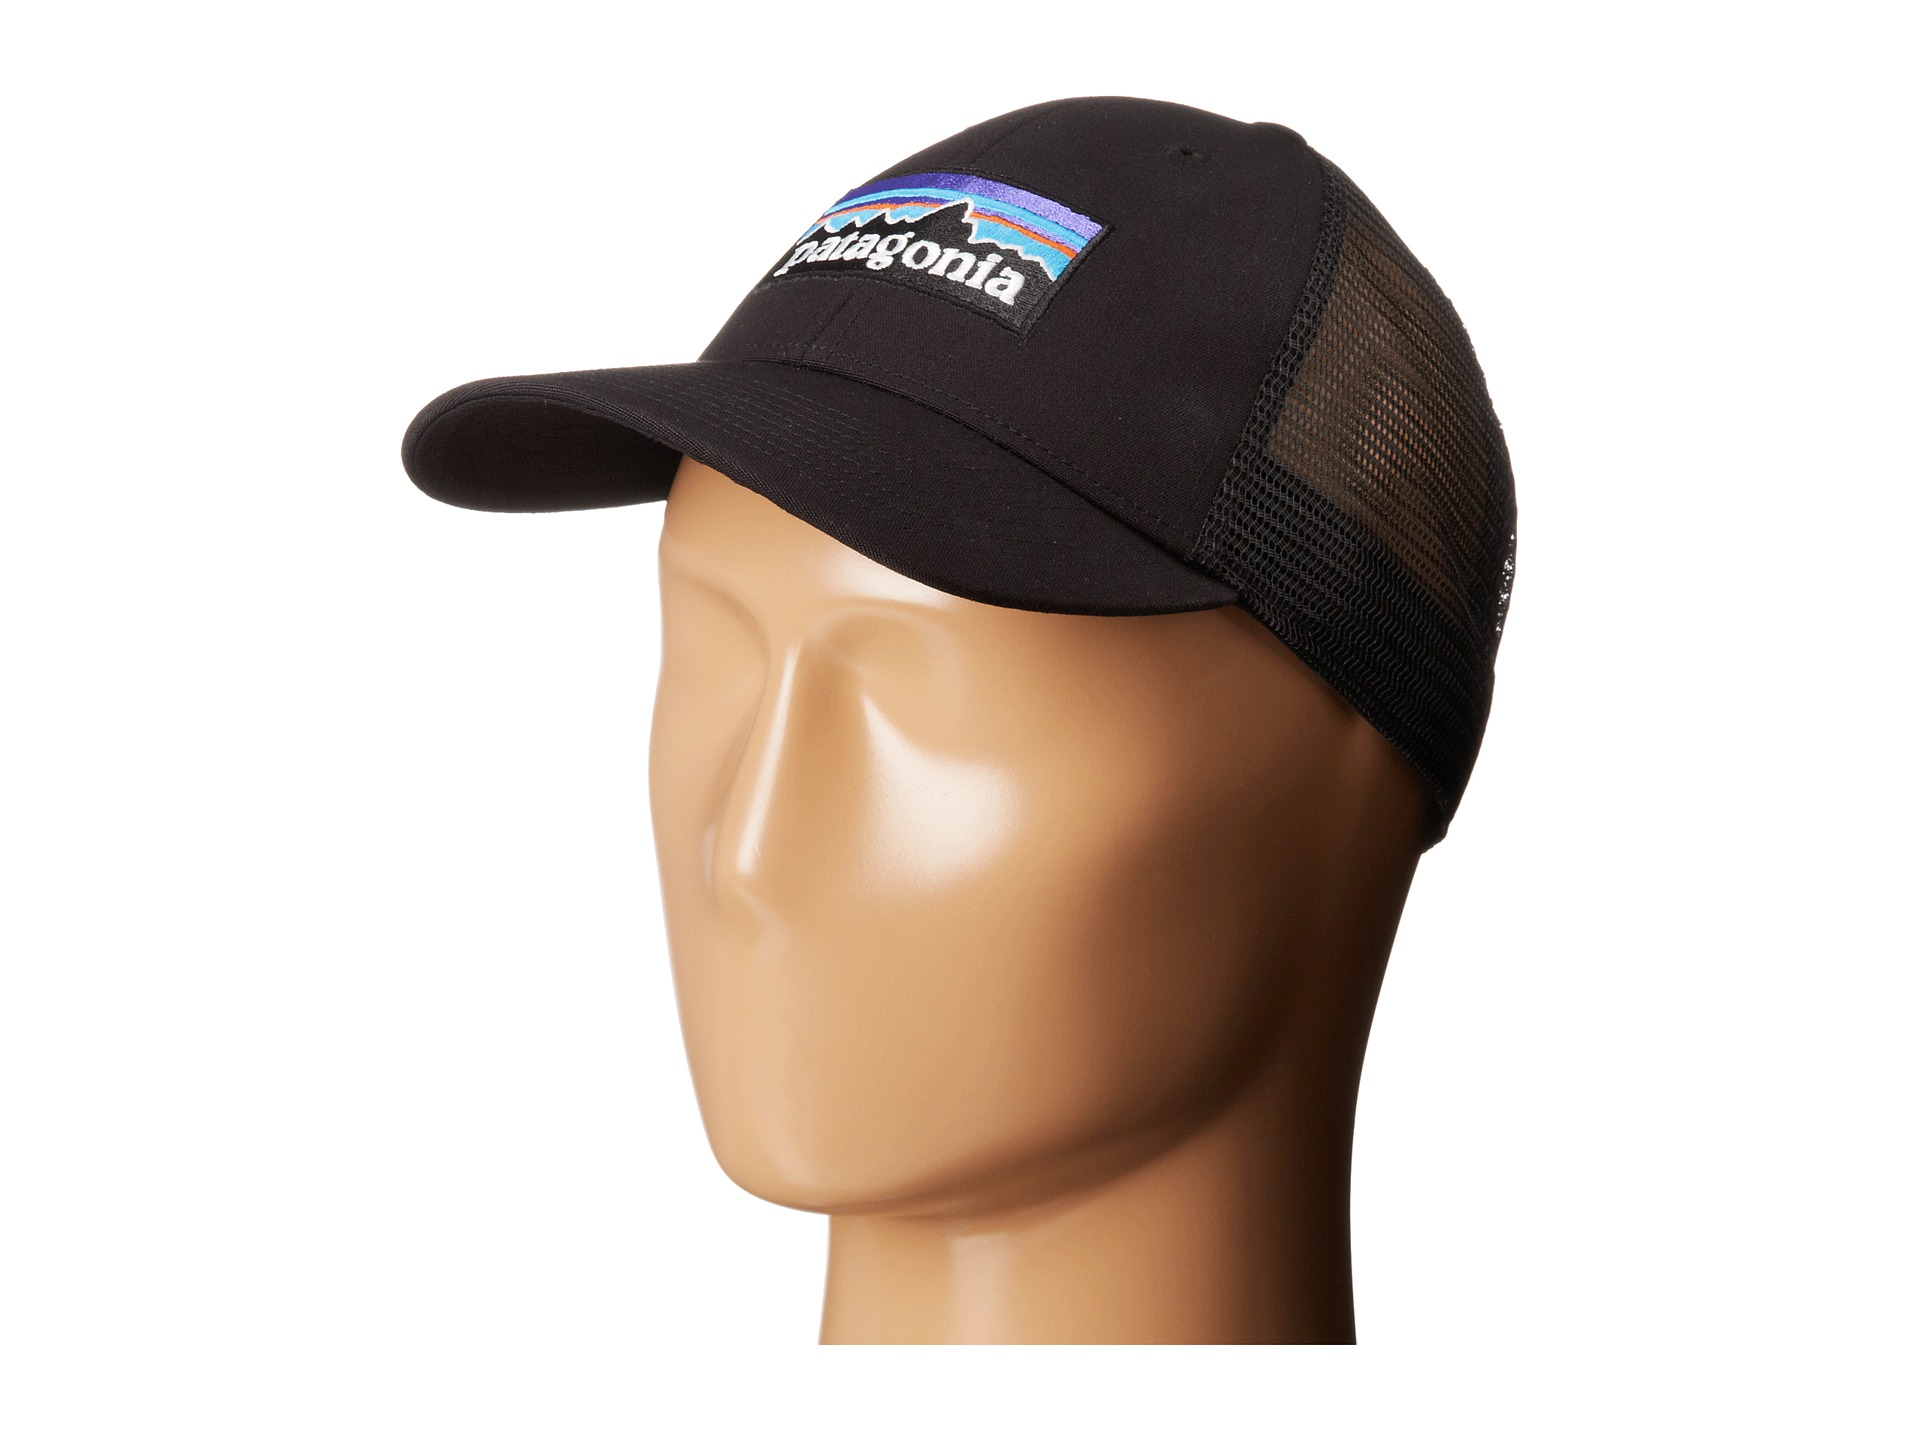 Lyst - Patagonia P6 Lopro Trucker Hat in Black eb190a9270b